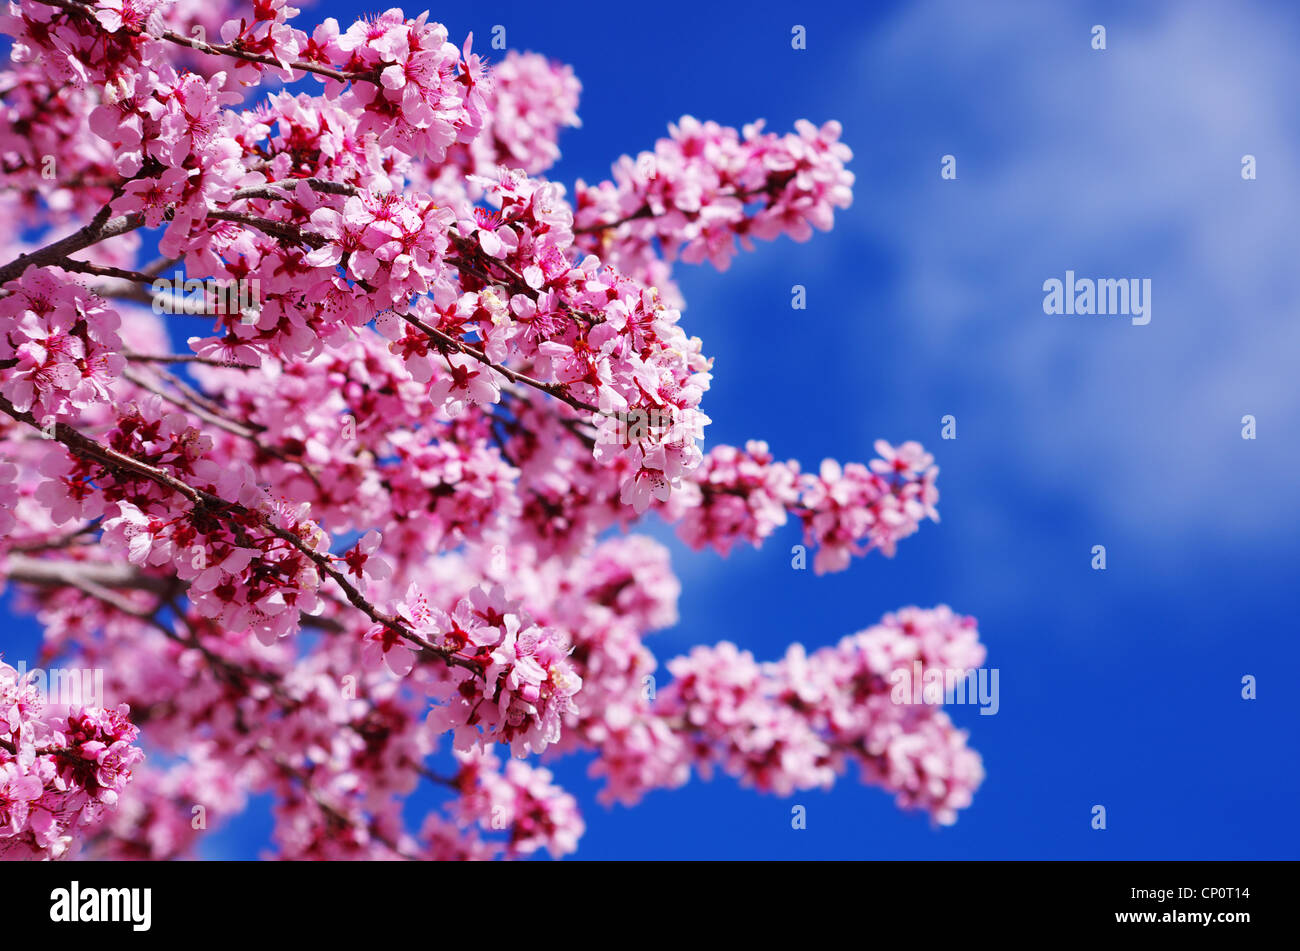 pink cherry blossoms with shallow depth of field and sky background Stock Photo